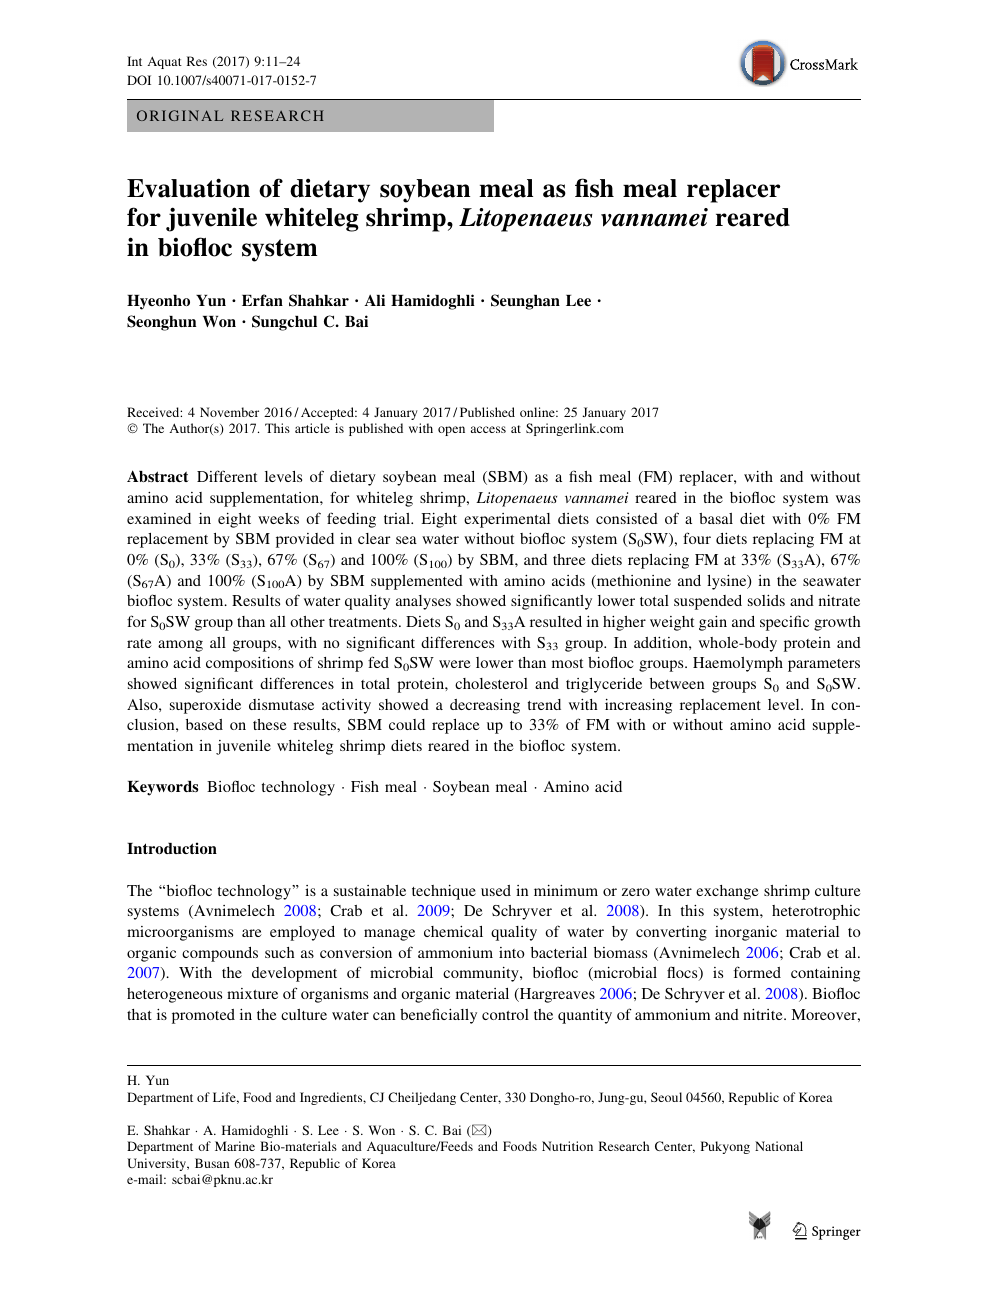 Evaluation of dietary soybean meal as fish meal replacer for